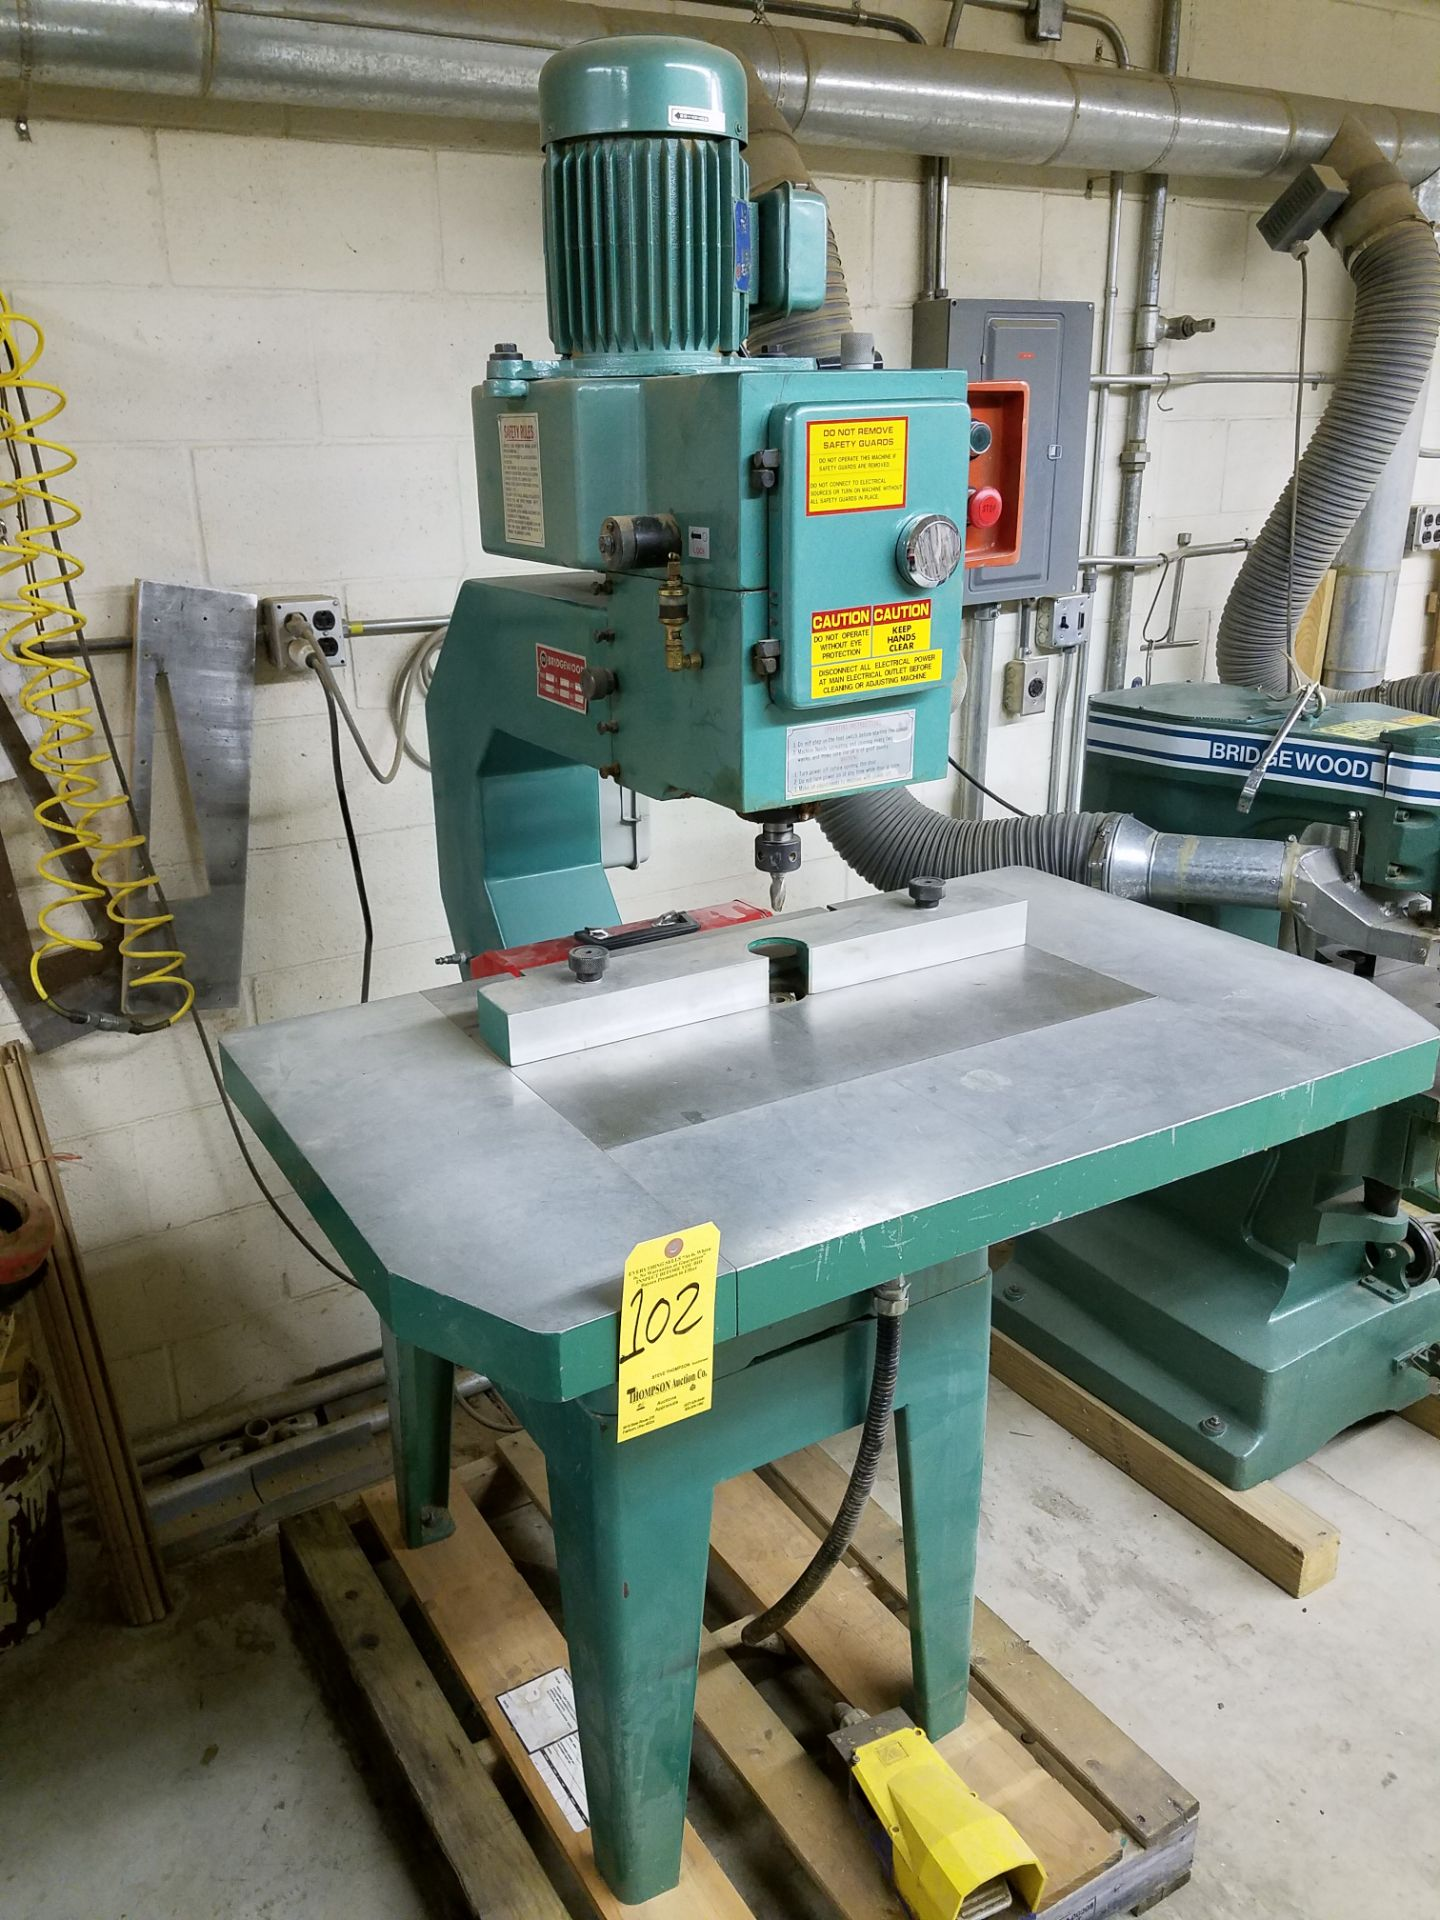 Lot 102 - Bridgewood SR550 Pneumatic High Speed Overarm Router, 3 HP, 220/1/60 AC, Loading Fee $50.00